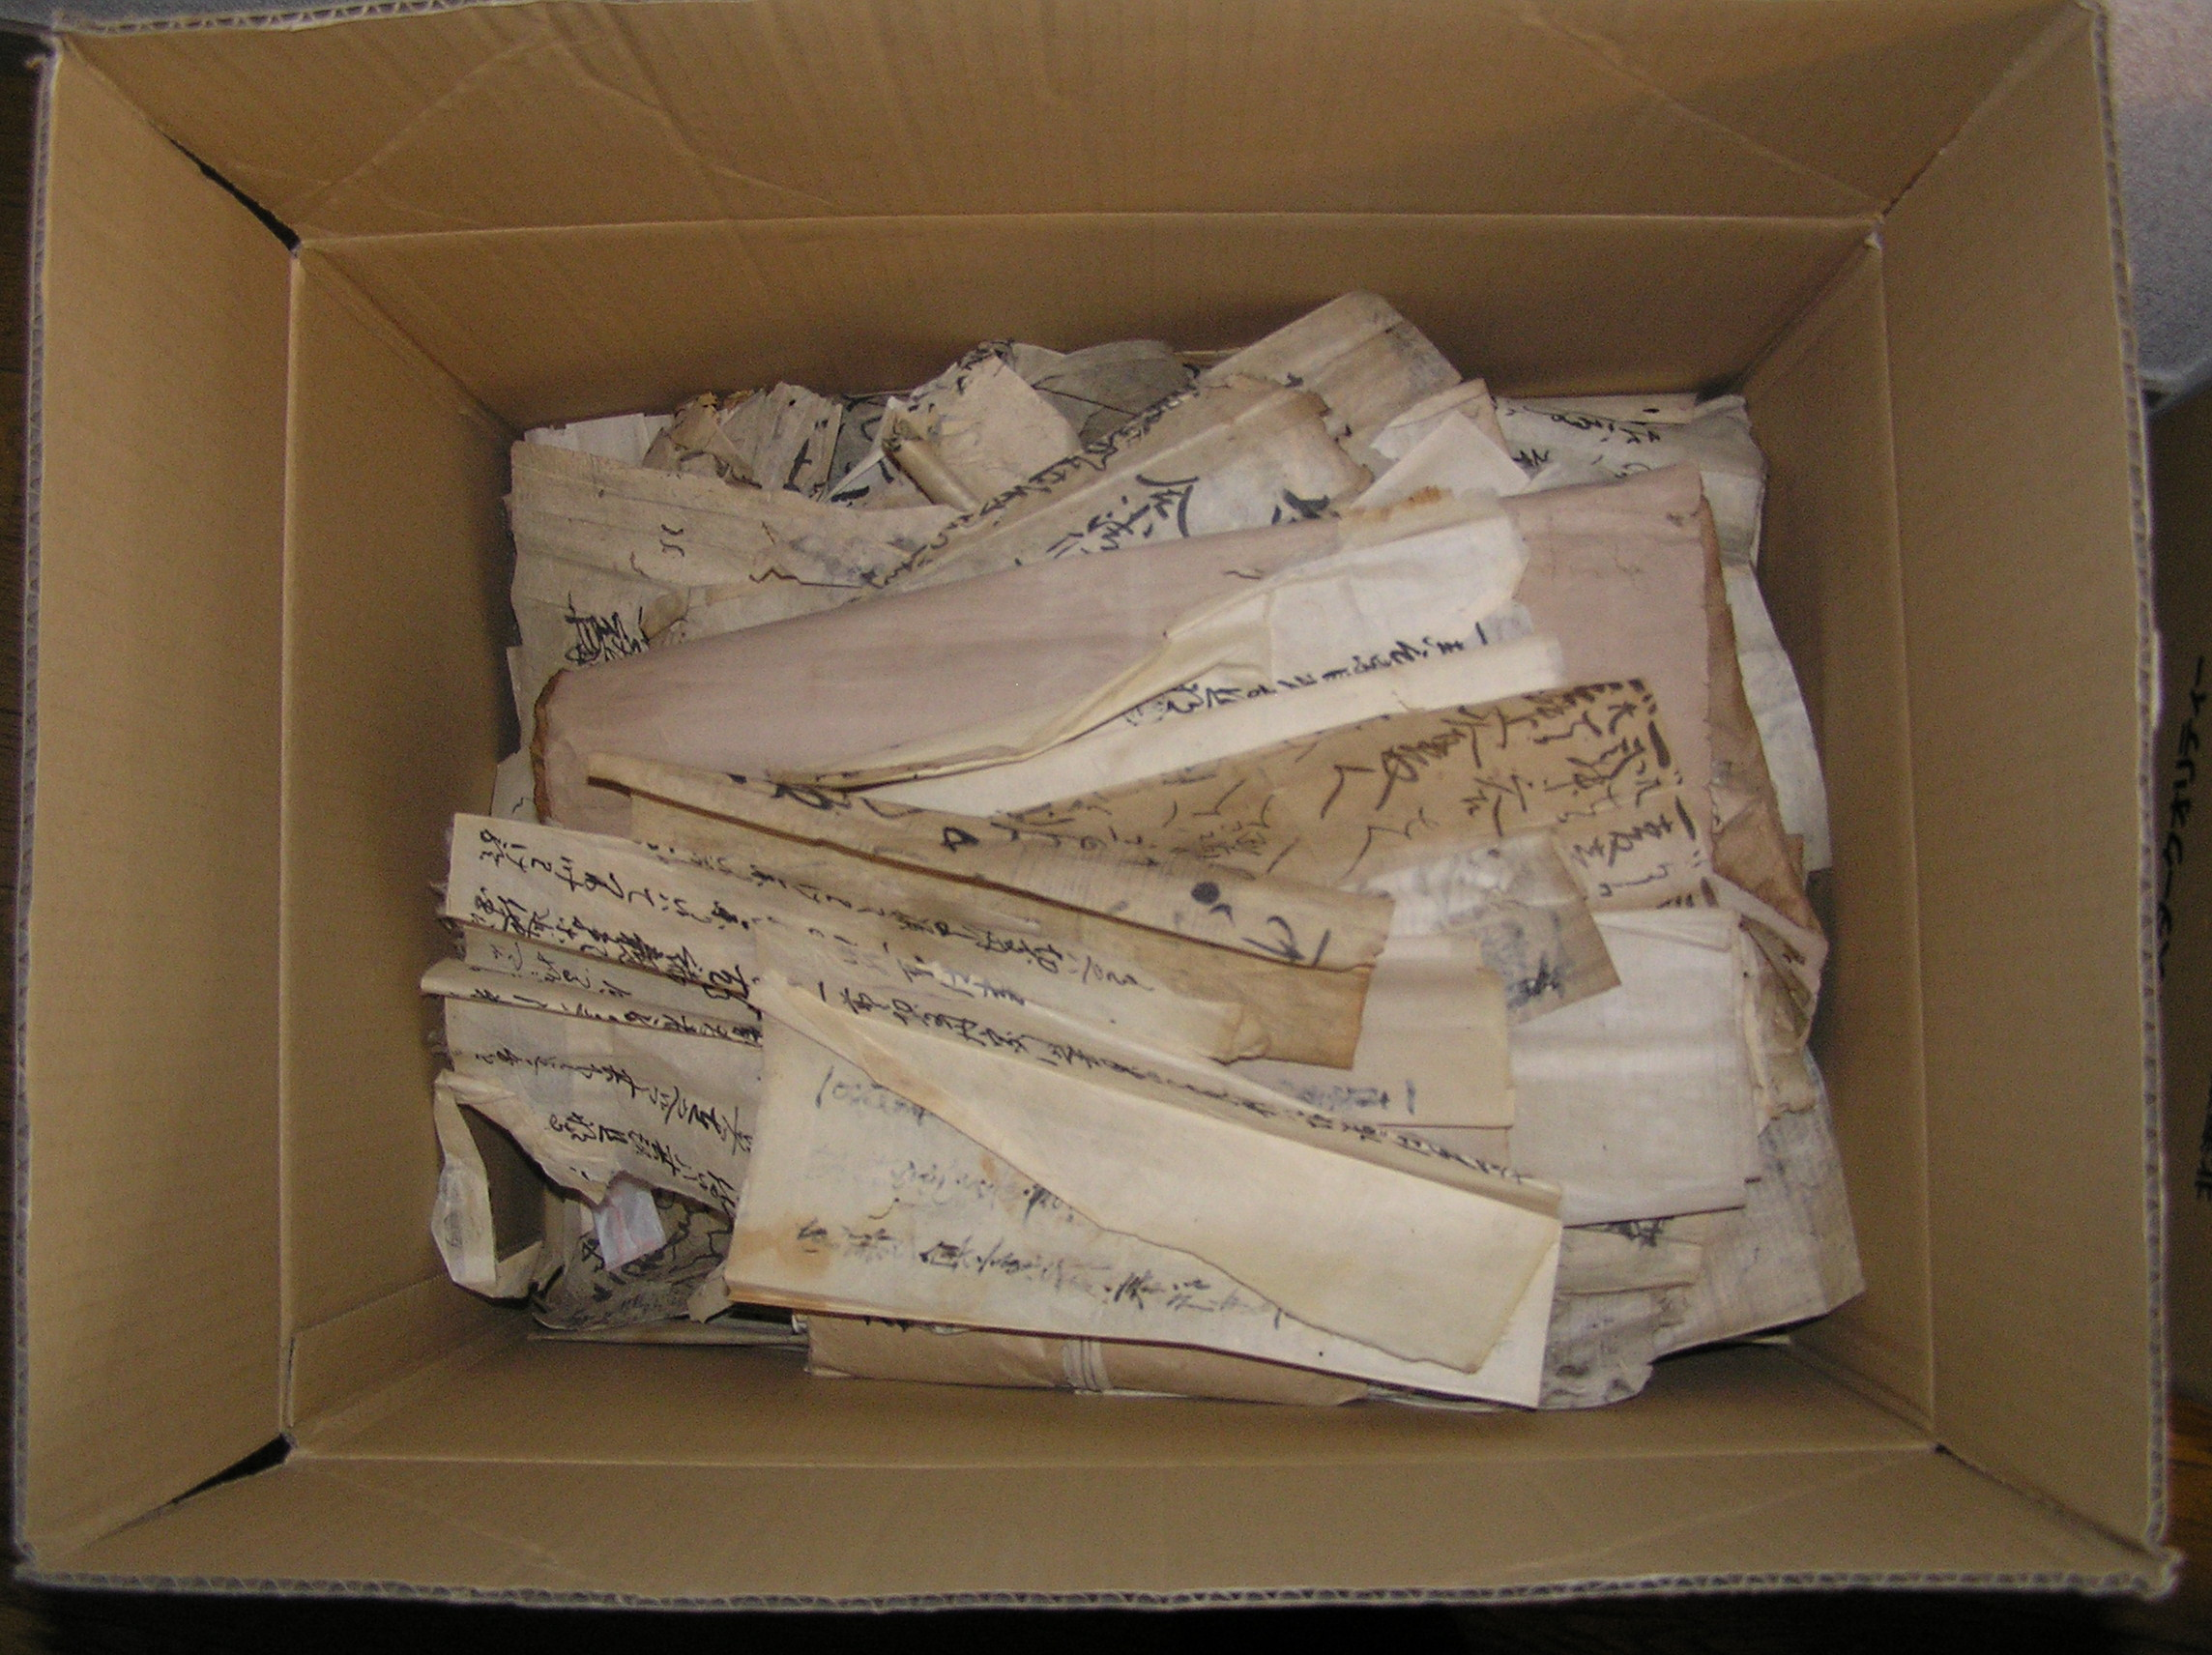 Sakuramotobō materials in their box